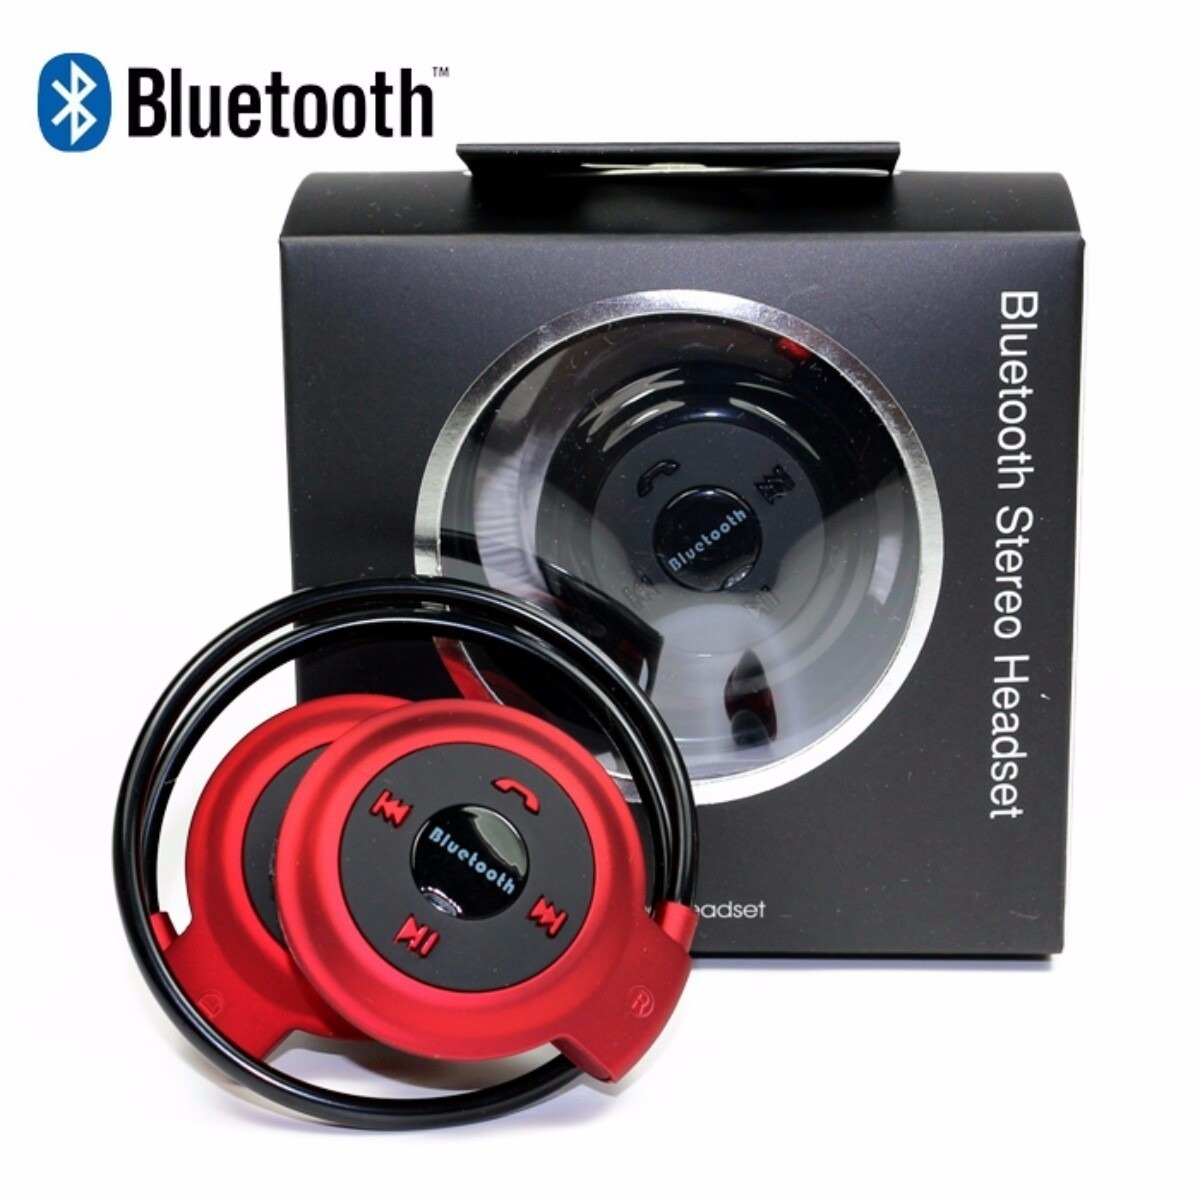 Manos Libres Bluetooth Para Celular Audifono Bluetooth Manos Libres Flexible Celular Tablet